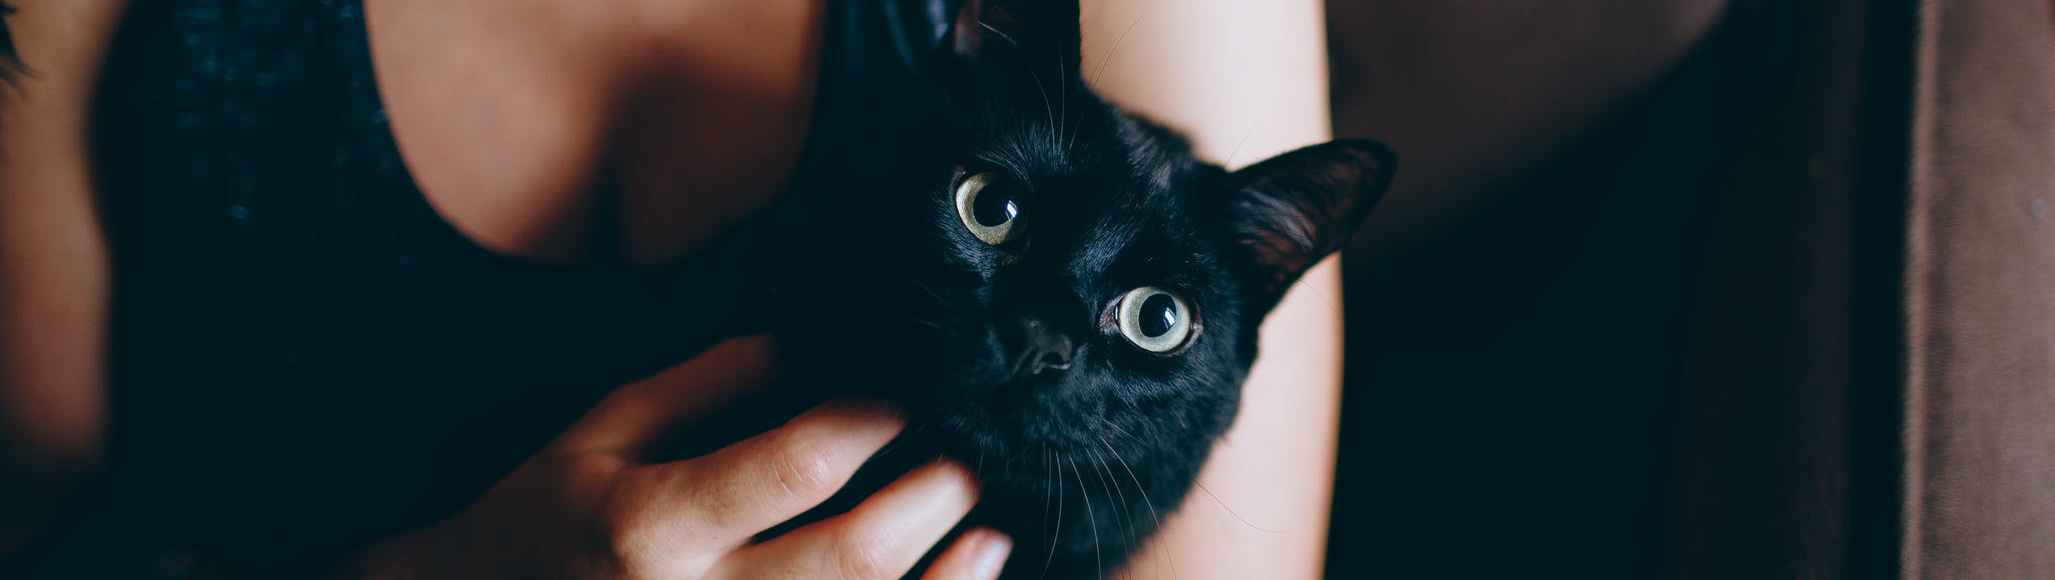 Cat whisperers on the other hand, can communicate with physically and emotionally abused cats.